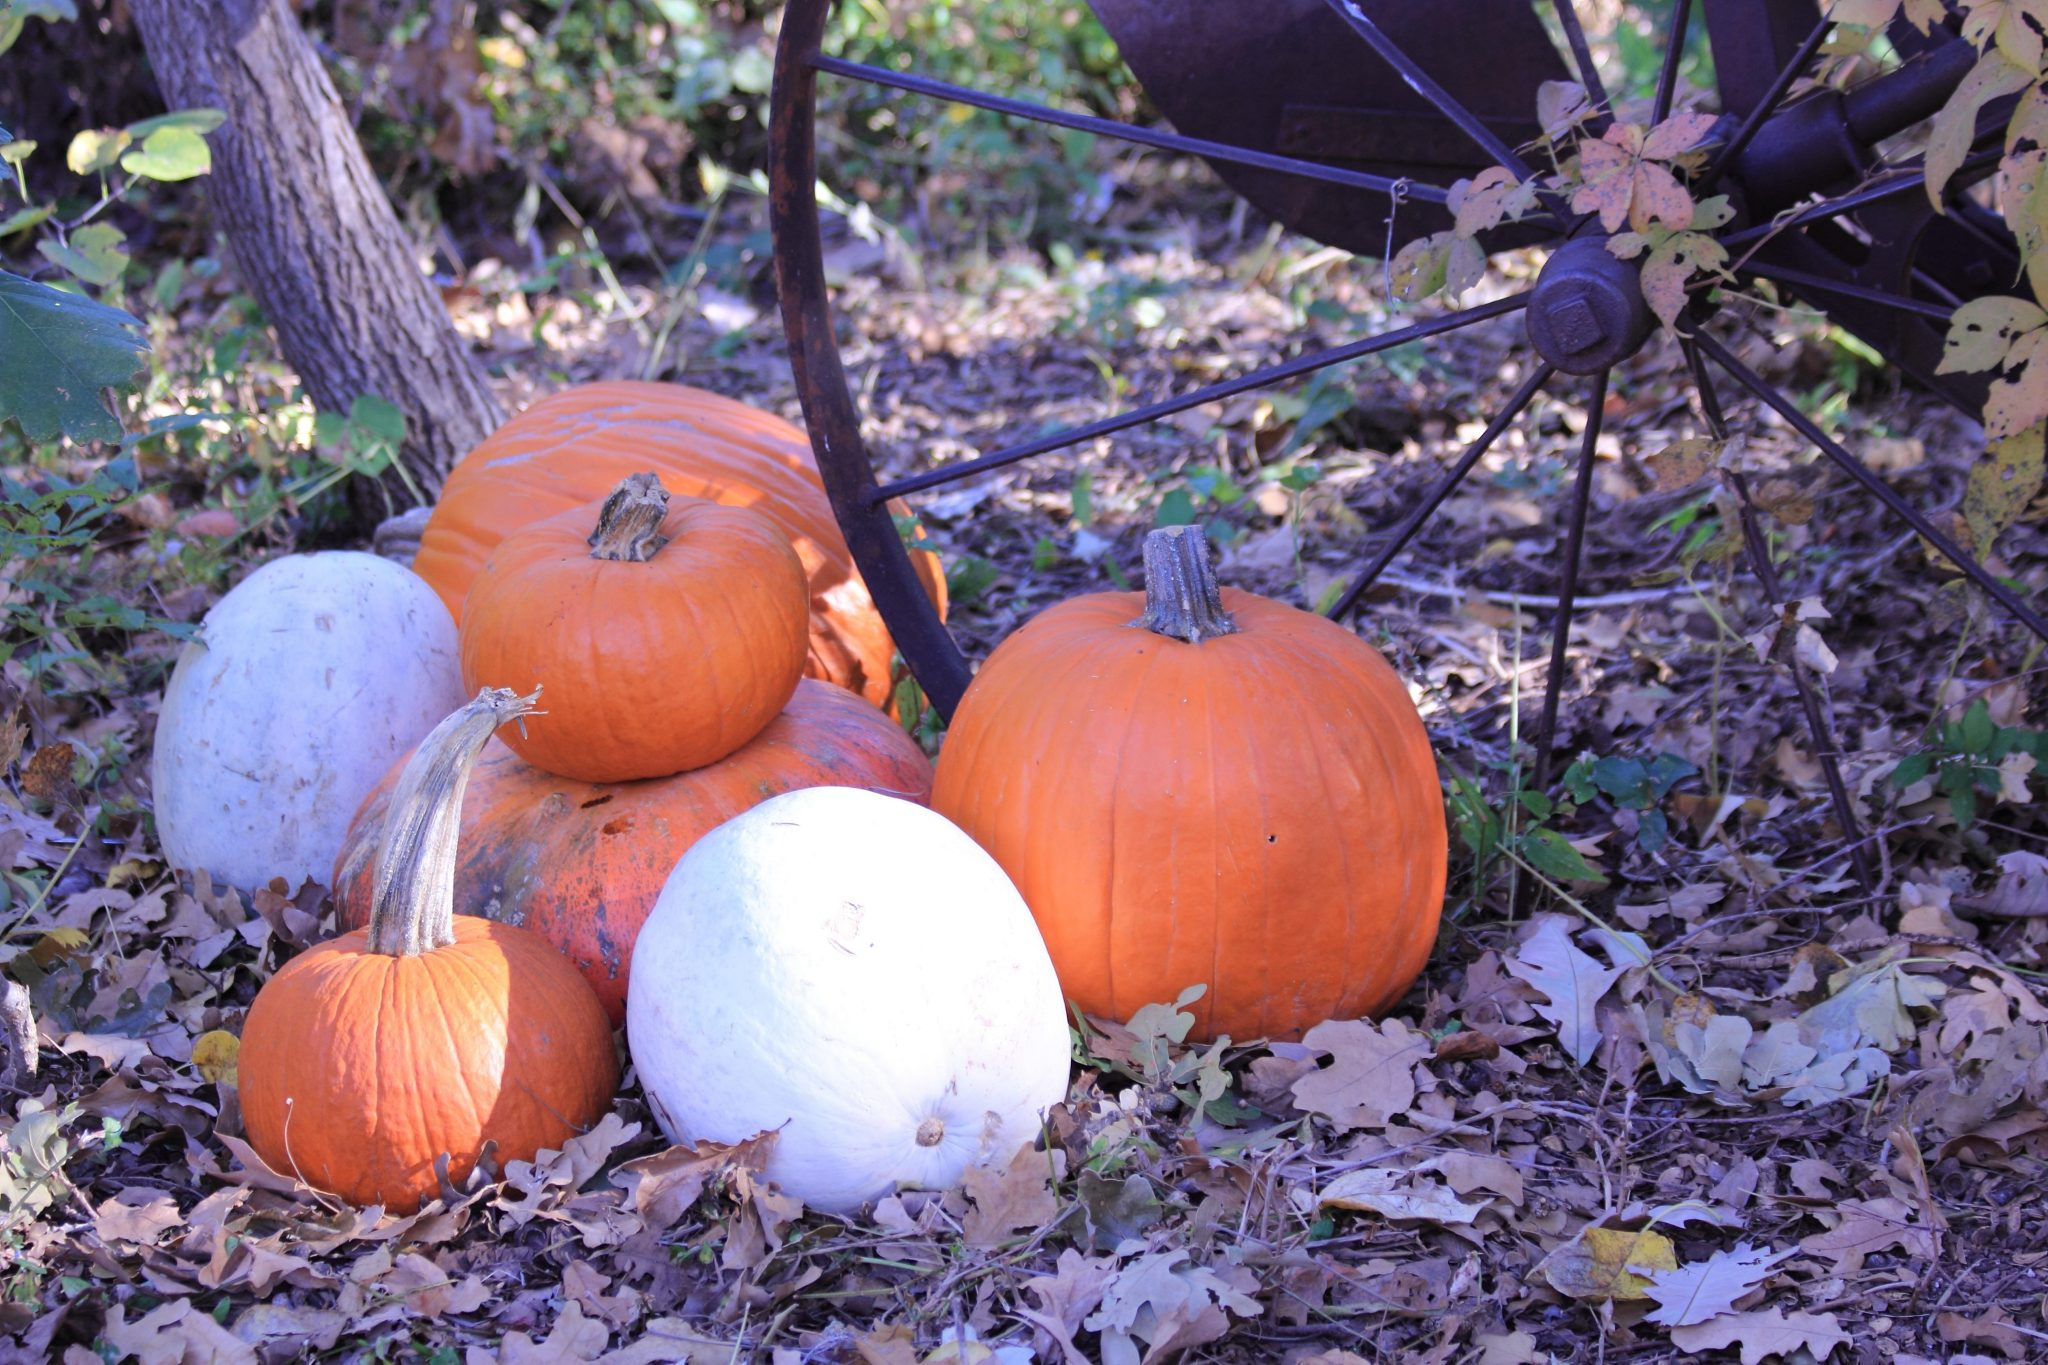 White Pumpkins and Orange Pumpkins